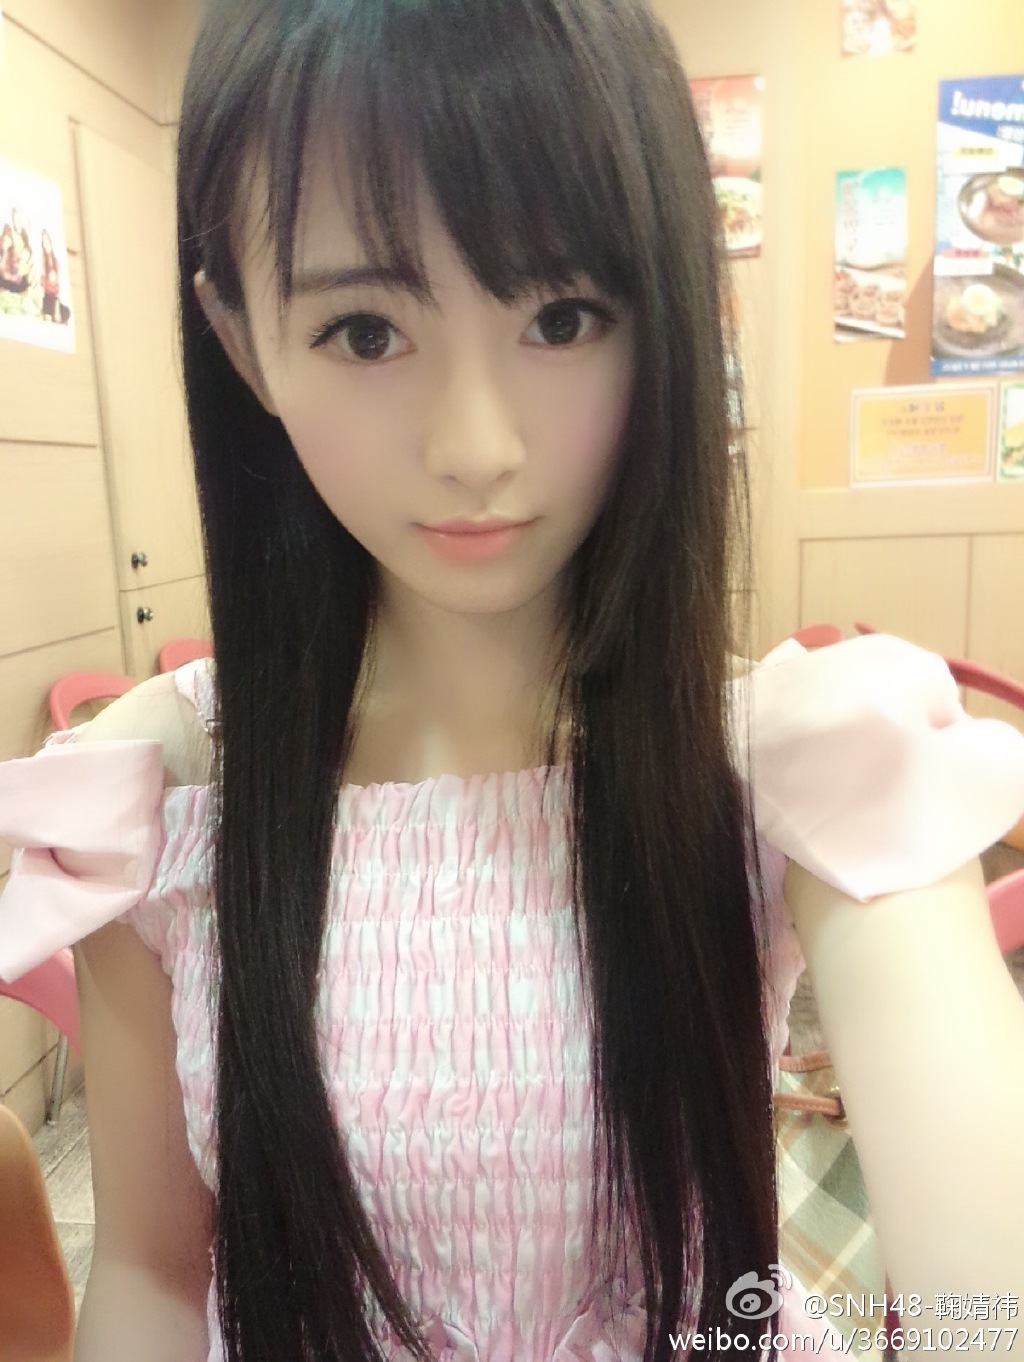 http://aliimg.changba.com/cache/photo/242023321_640_640.jpg_CURL:【4倍】4千年に一人の美少女、SNH48「ジュー・ジンイー